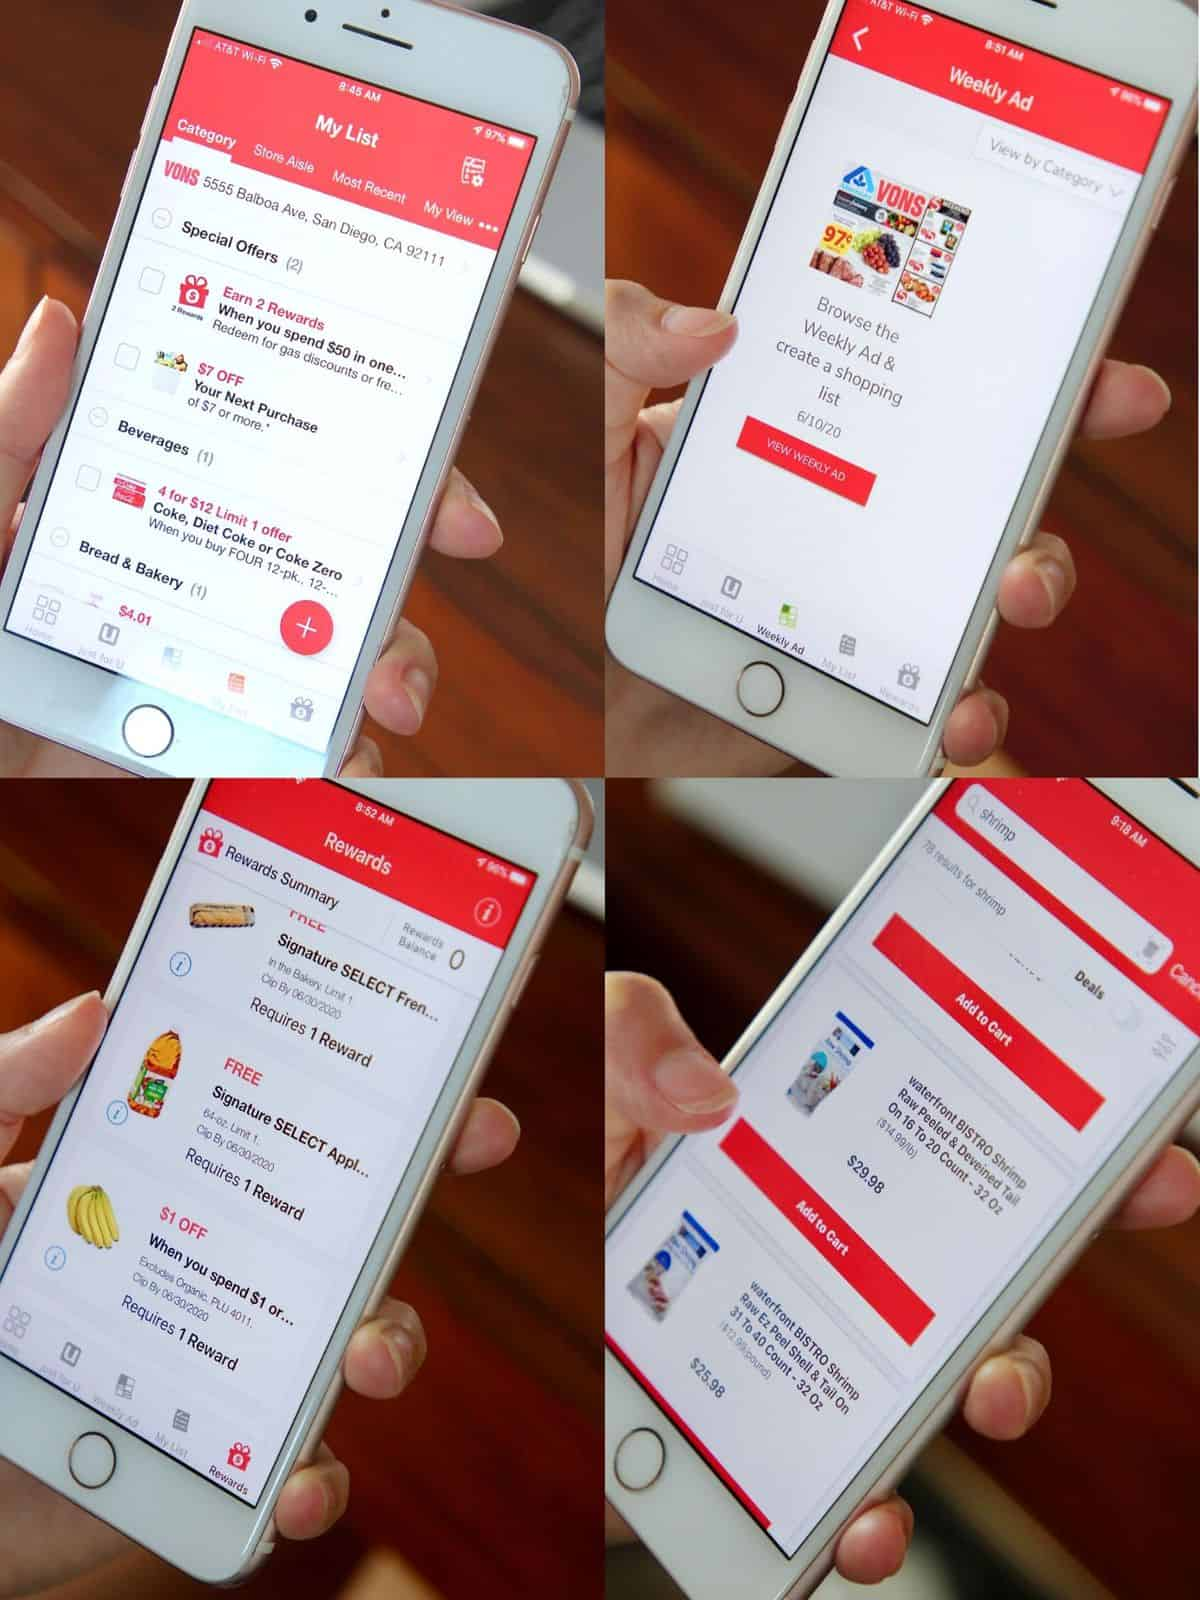 collage of images showing iphone displays of the Vons just for U app